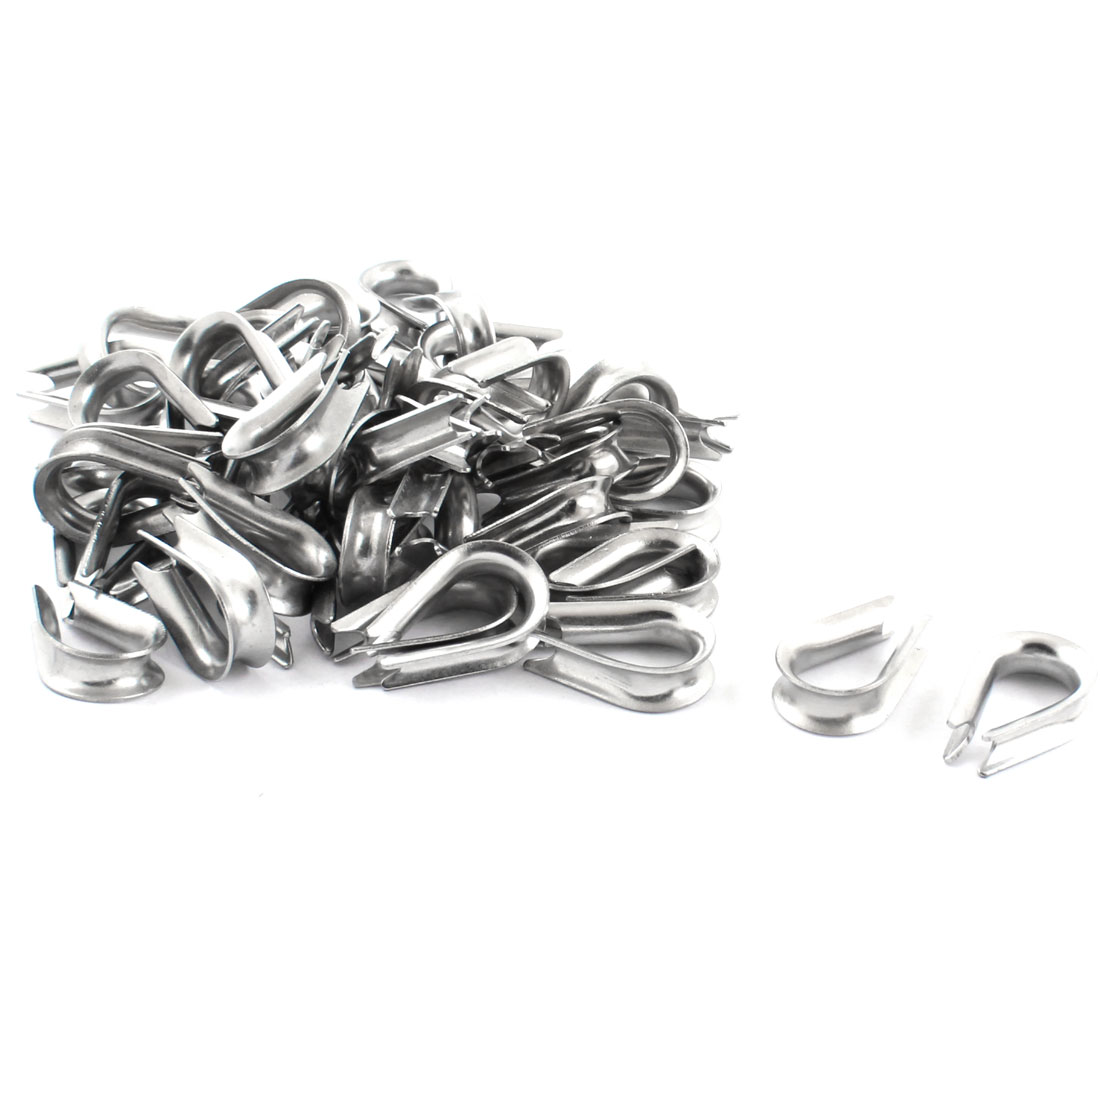 50PCS Silver Tone Stainless Steel Cable Thimbles for 5mm 1/5 Inch Wire Rope